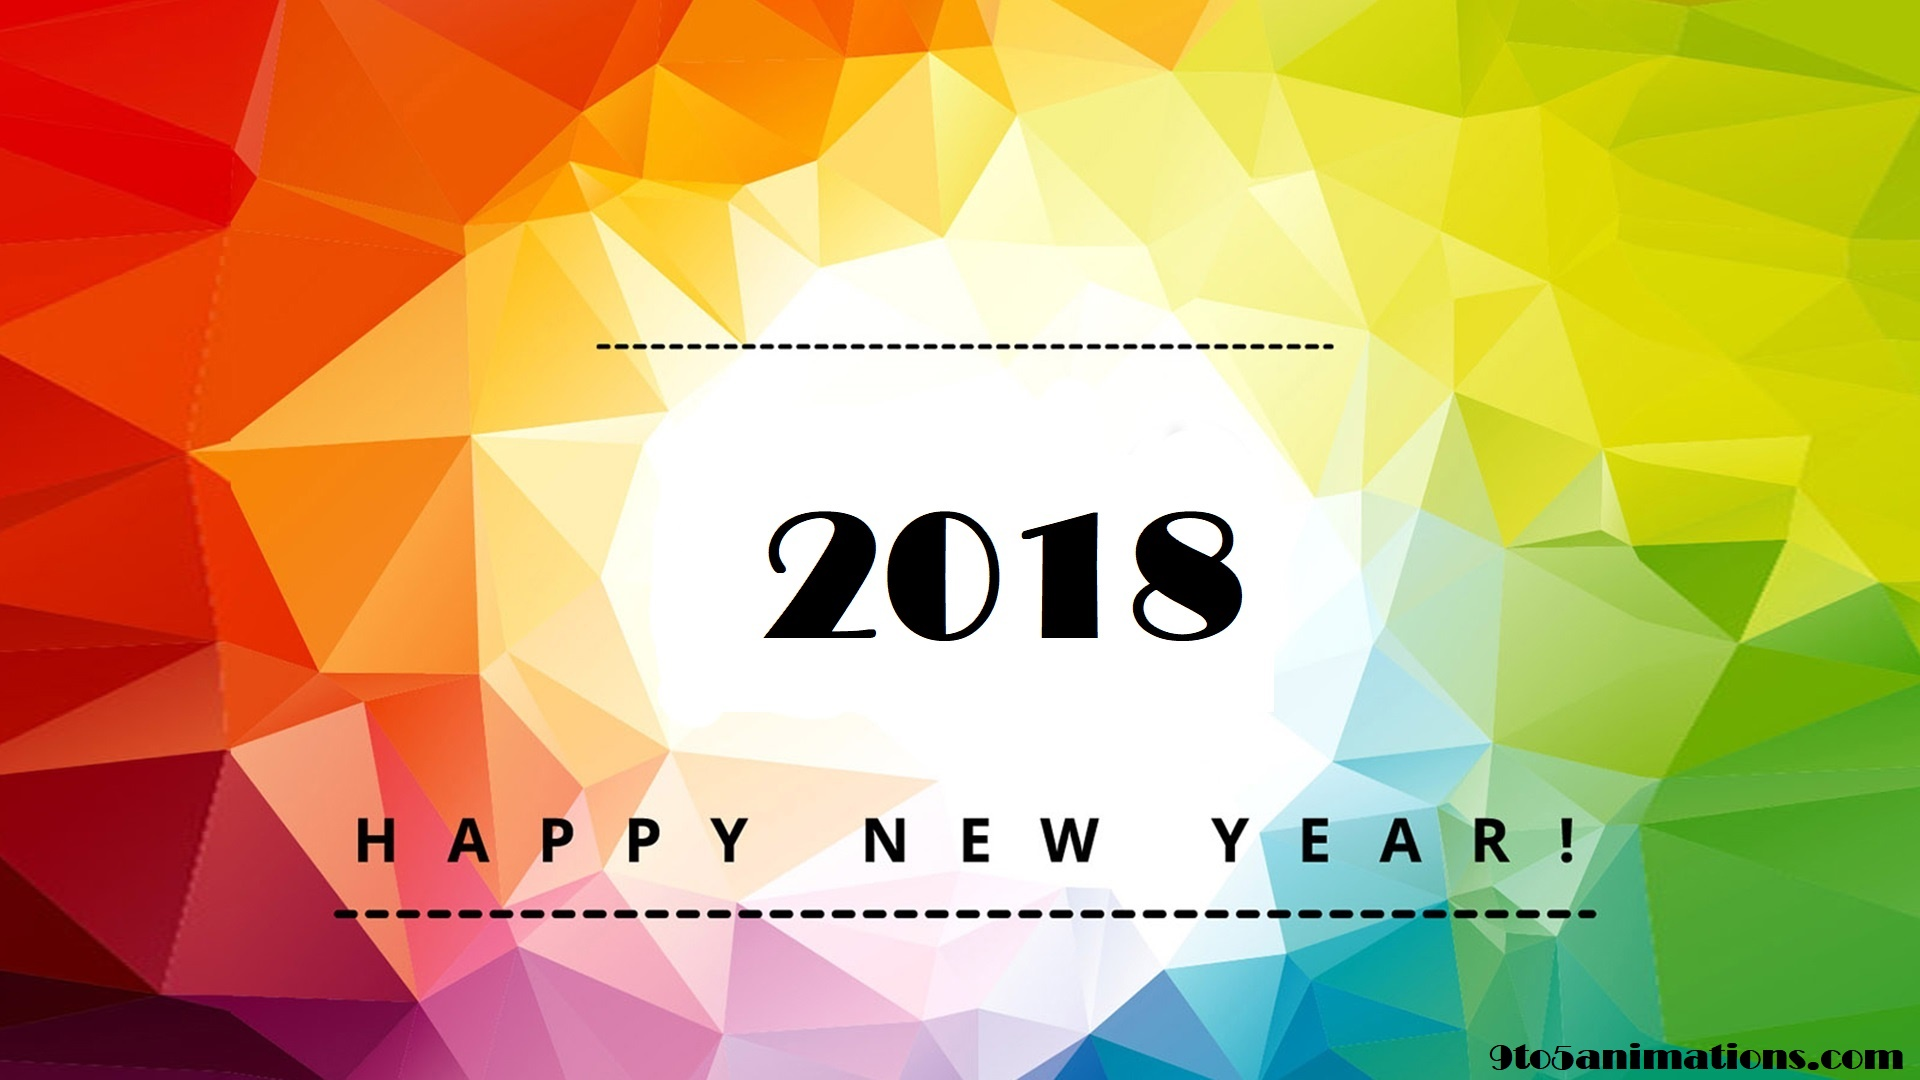 Wallpaper Hd Happy New Year 2018 Festival Collections 1920x1080